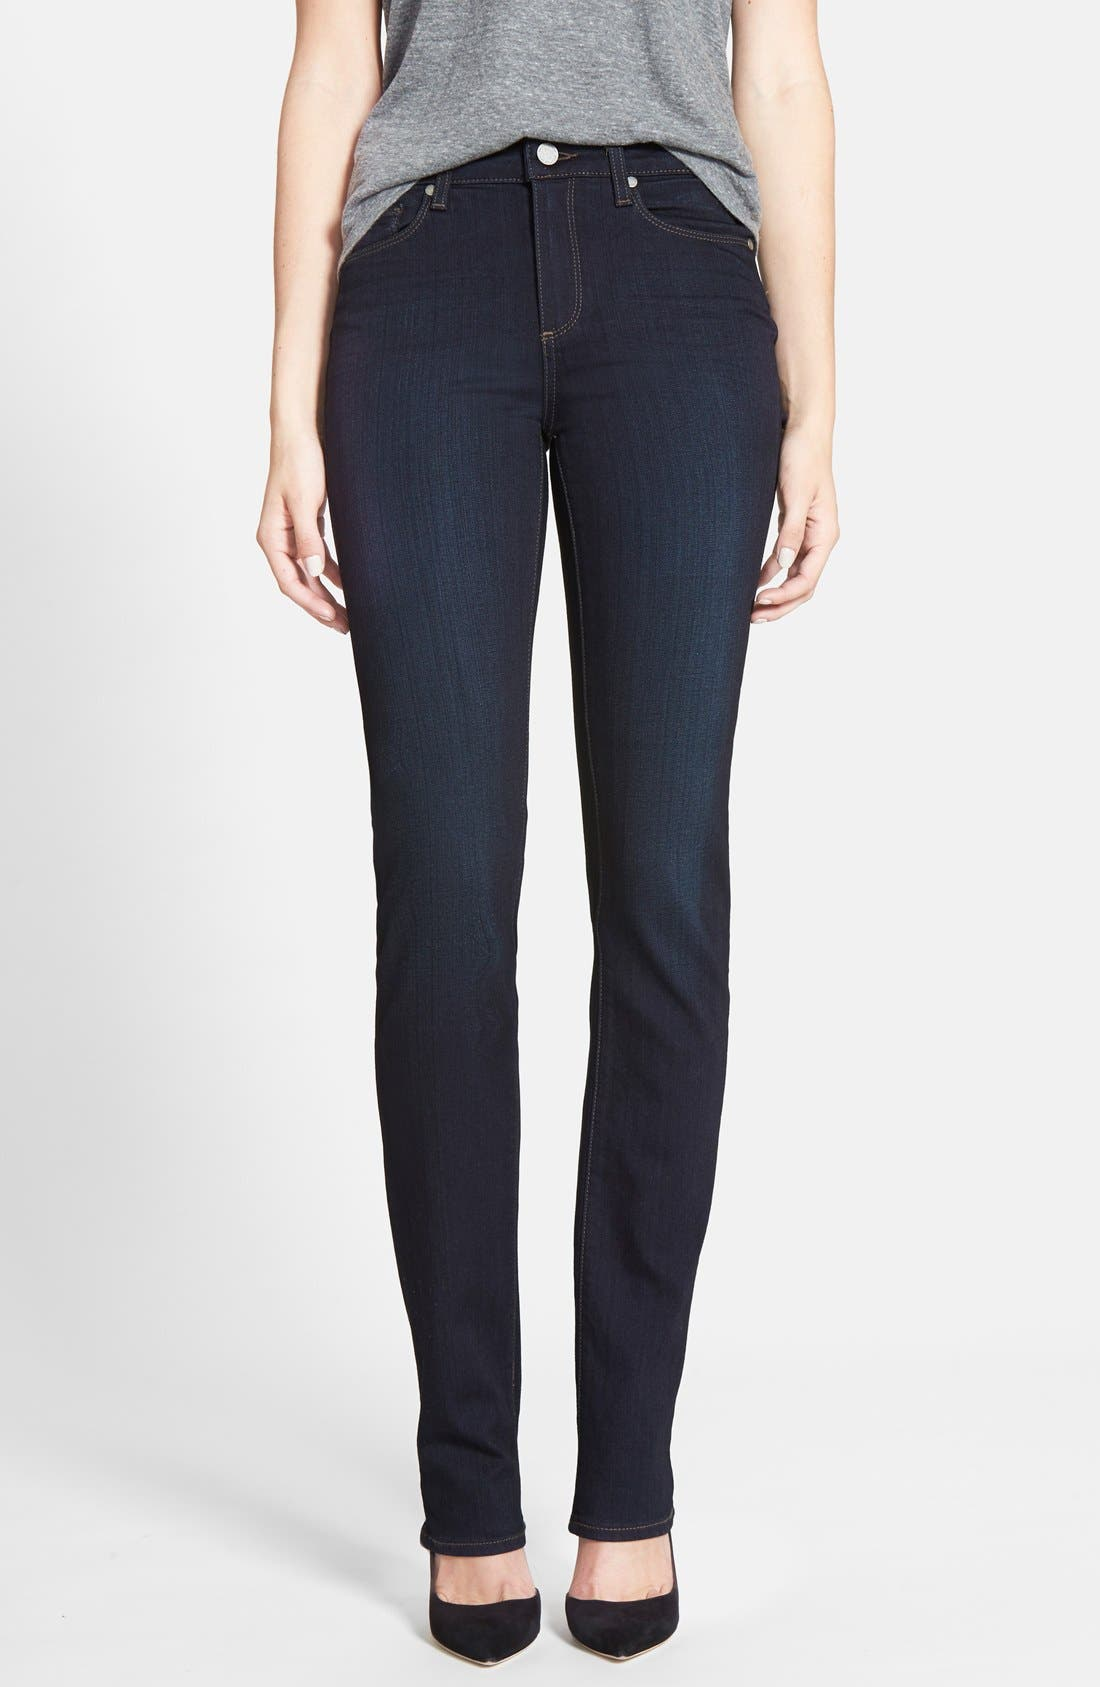 PAIGE Transcend - Hoxton High Waist Straight Jeans